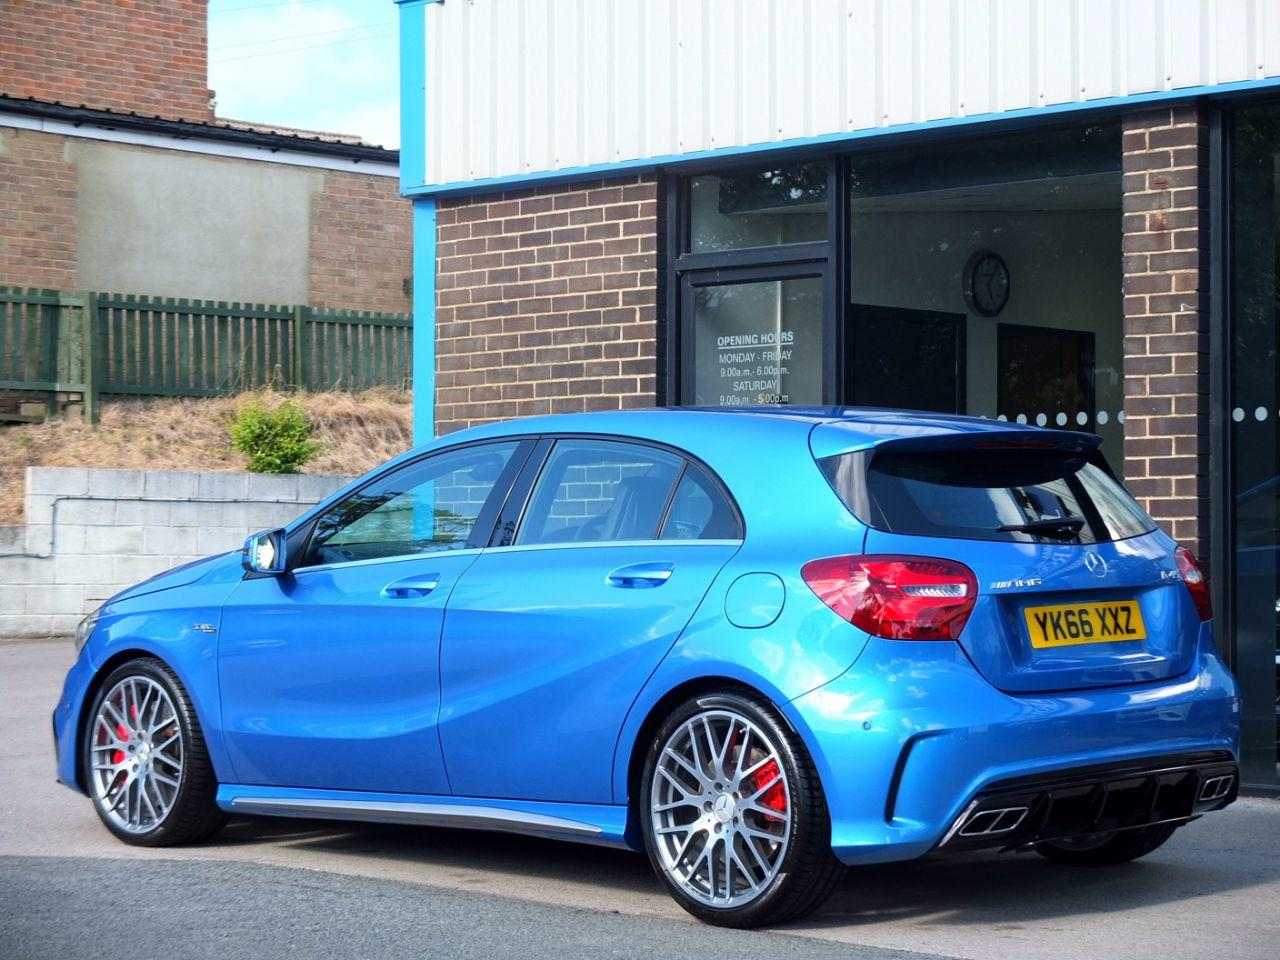 Mercedes-Benz A Class 2.0 AMG A45 4MATIC Speedshift DCT Auto 381bhp Hatchback Petrol South Sea Blue Metallic